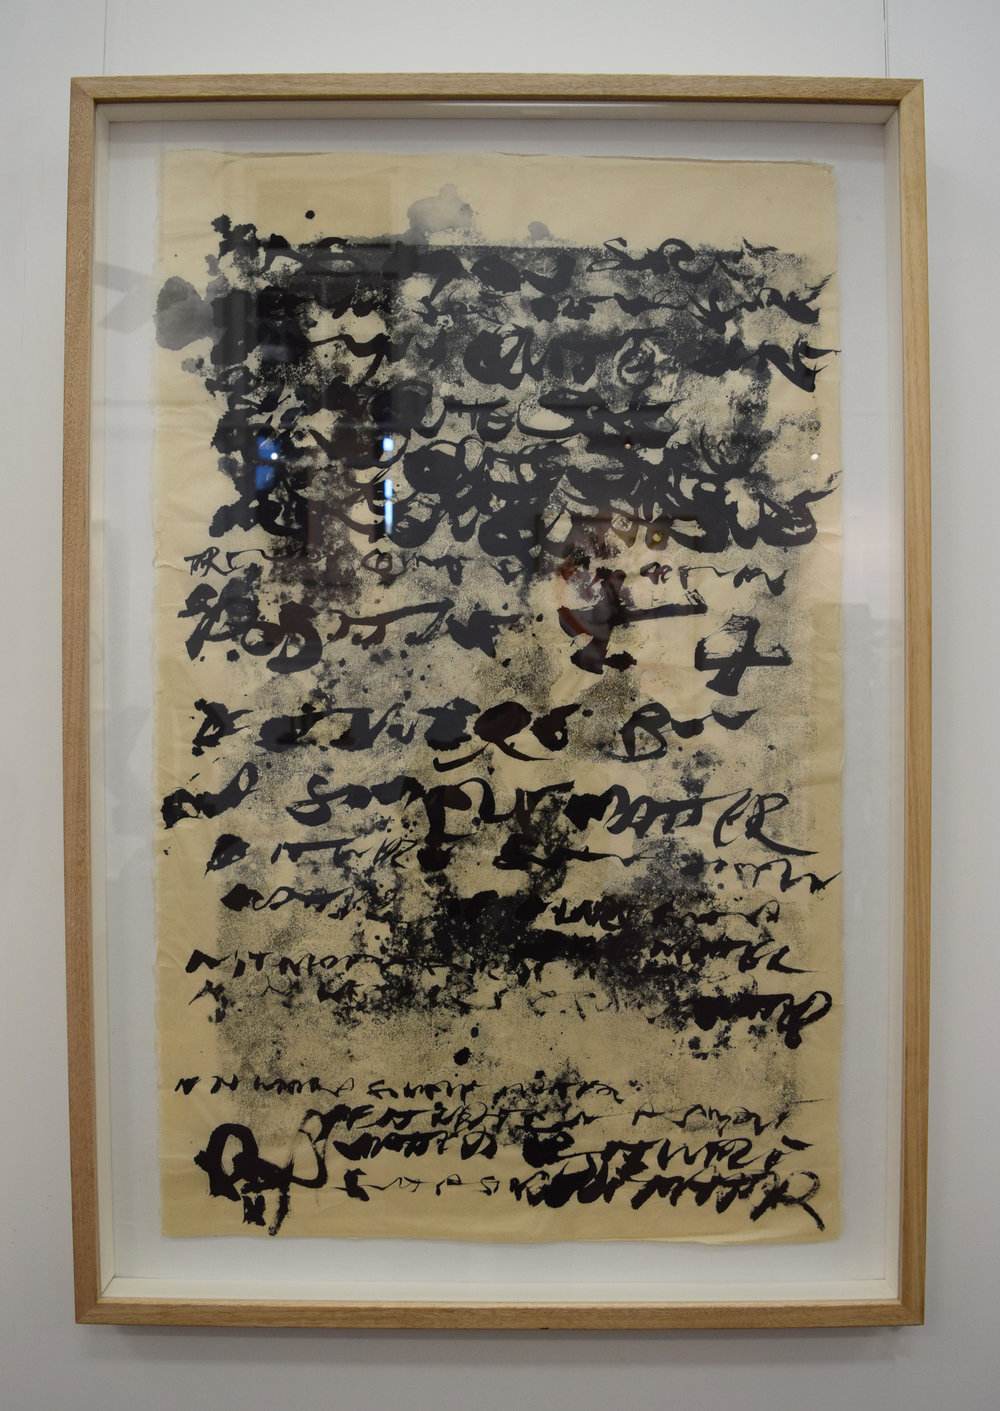 17. Rory Dax Paton,  I'm having changes,  2017, ink monotype, wax pencil, Washi paper, 107 x 72cm $1,800